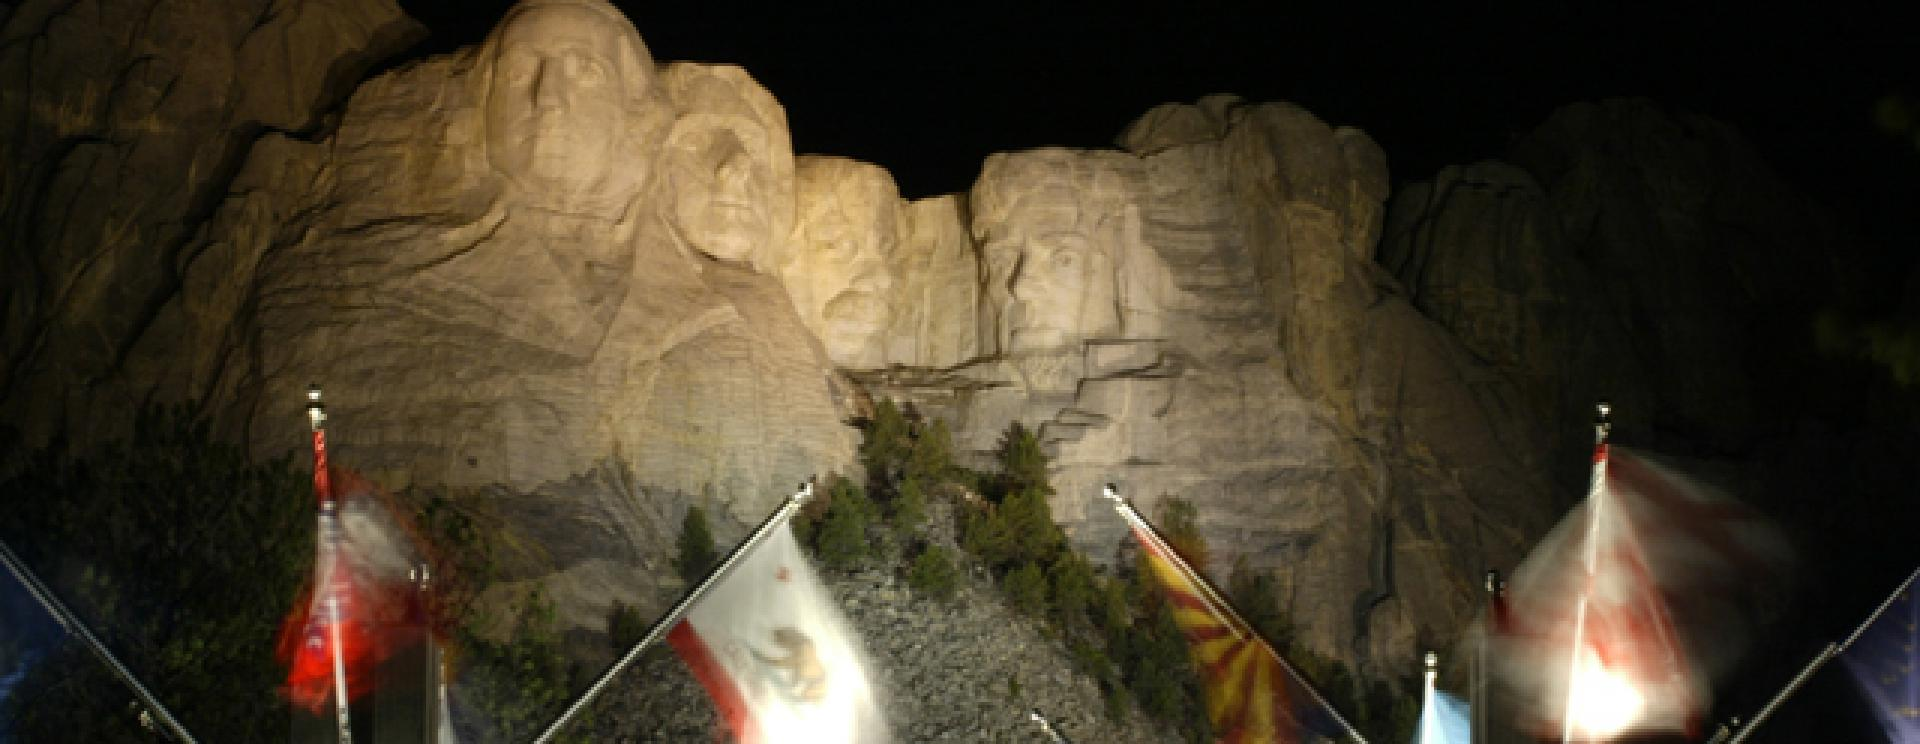 Evening Lighting Ceremony at Mount Rushmore National Memorial